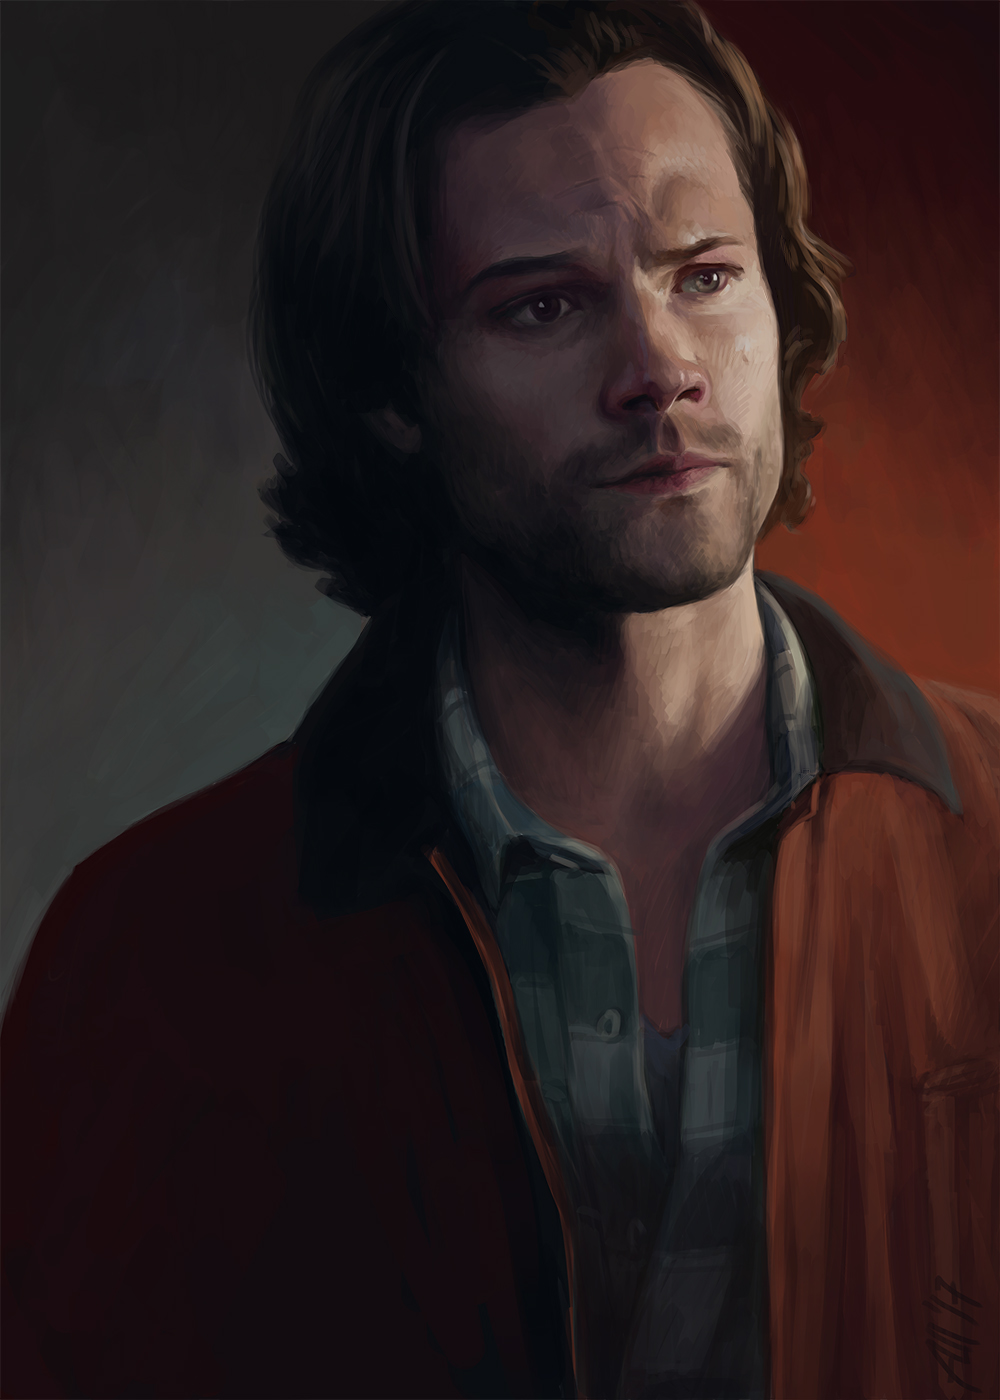 Sam Winchester in red jacket by Armellin